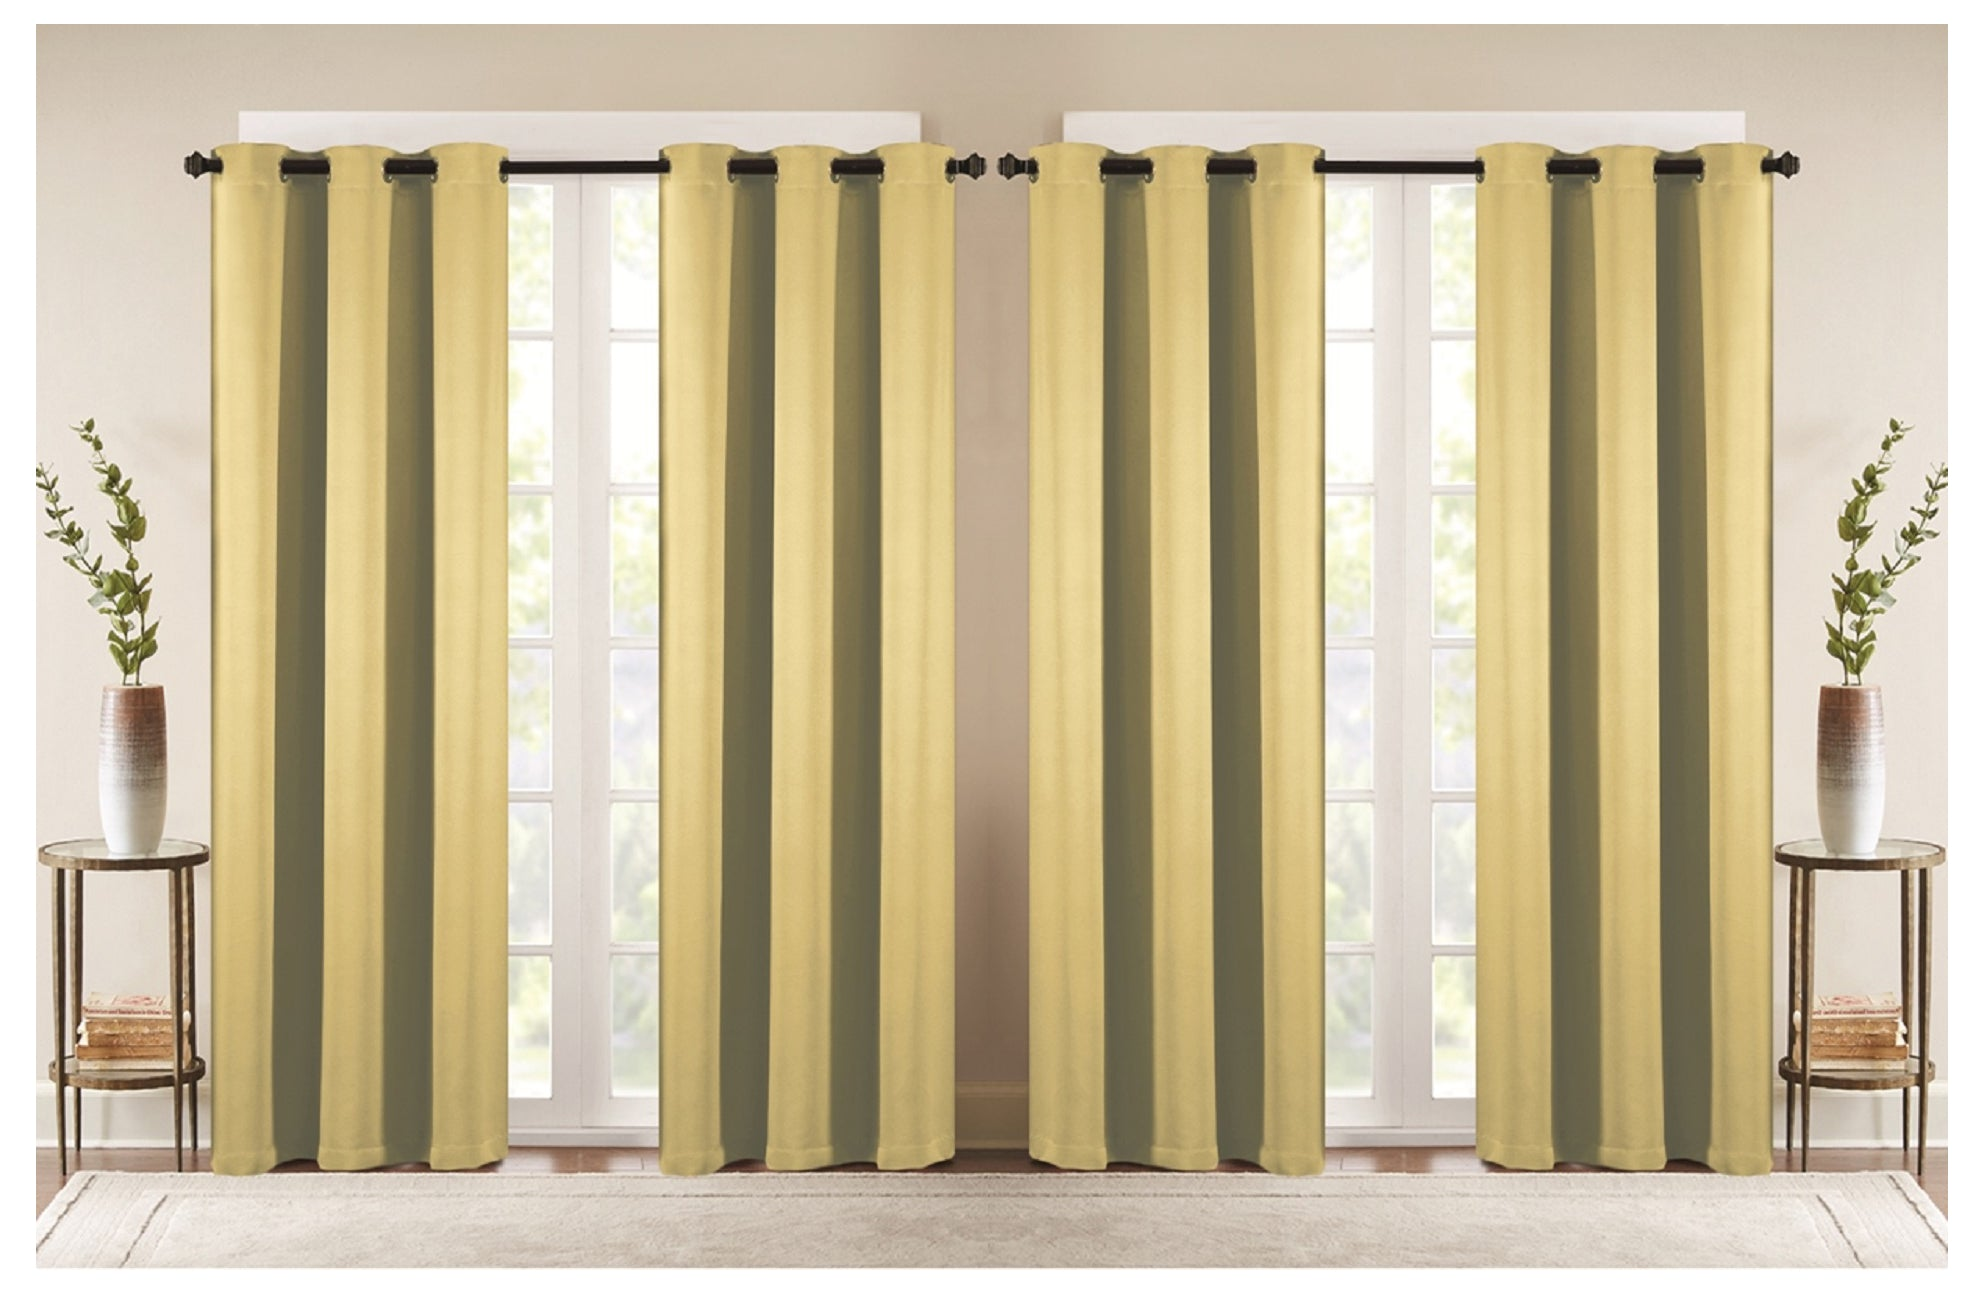 J&V TEXTILES 4-Panels: Room Darkening Thermal Insulated Blackout Grommet Window Curtain Panels for Living Room (Beige) - Window Curtains - J&V Textiles Premiere Home Goods